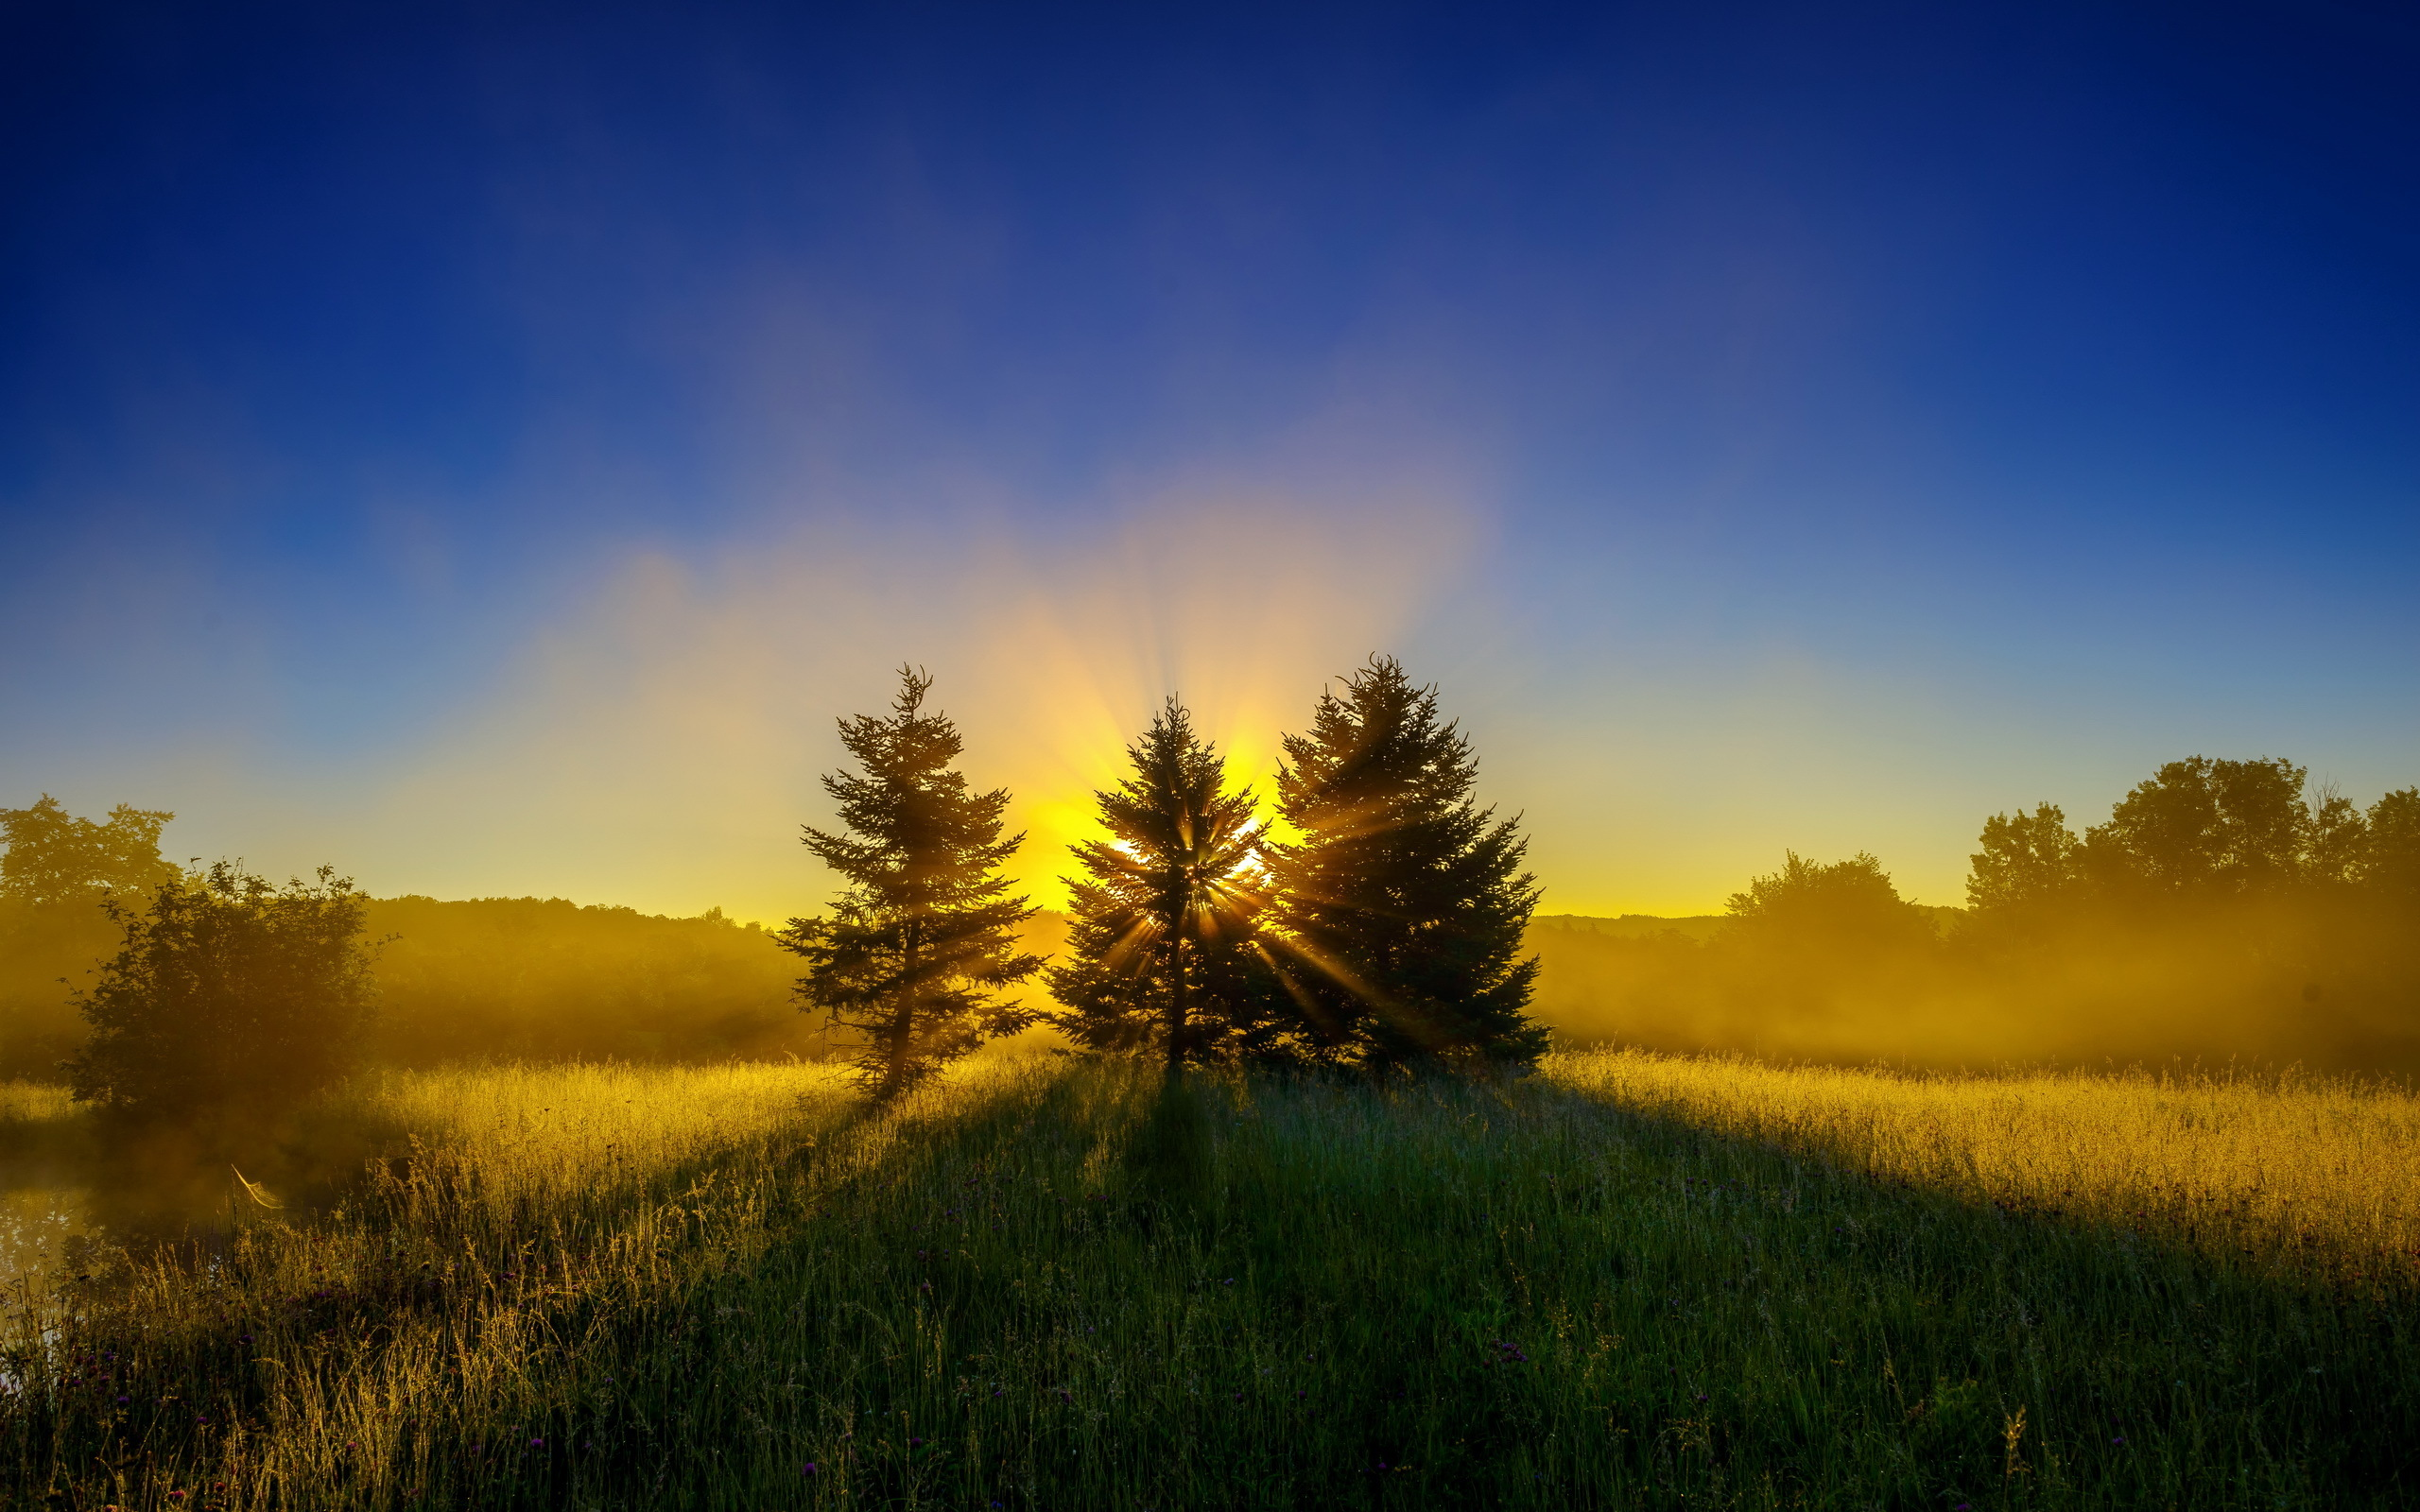 Sunrise Trees Wallpapers Pictures Photos Images. «